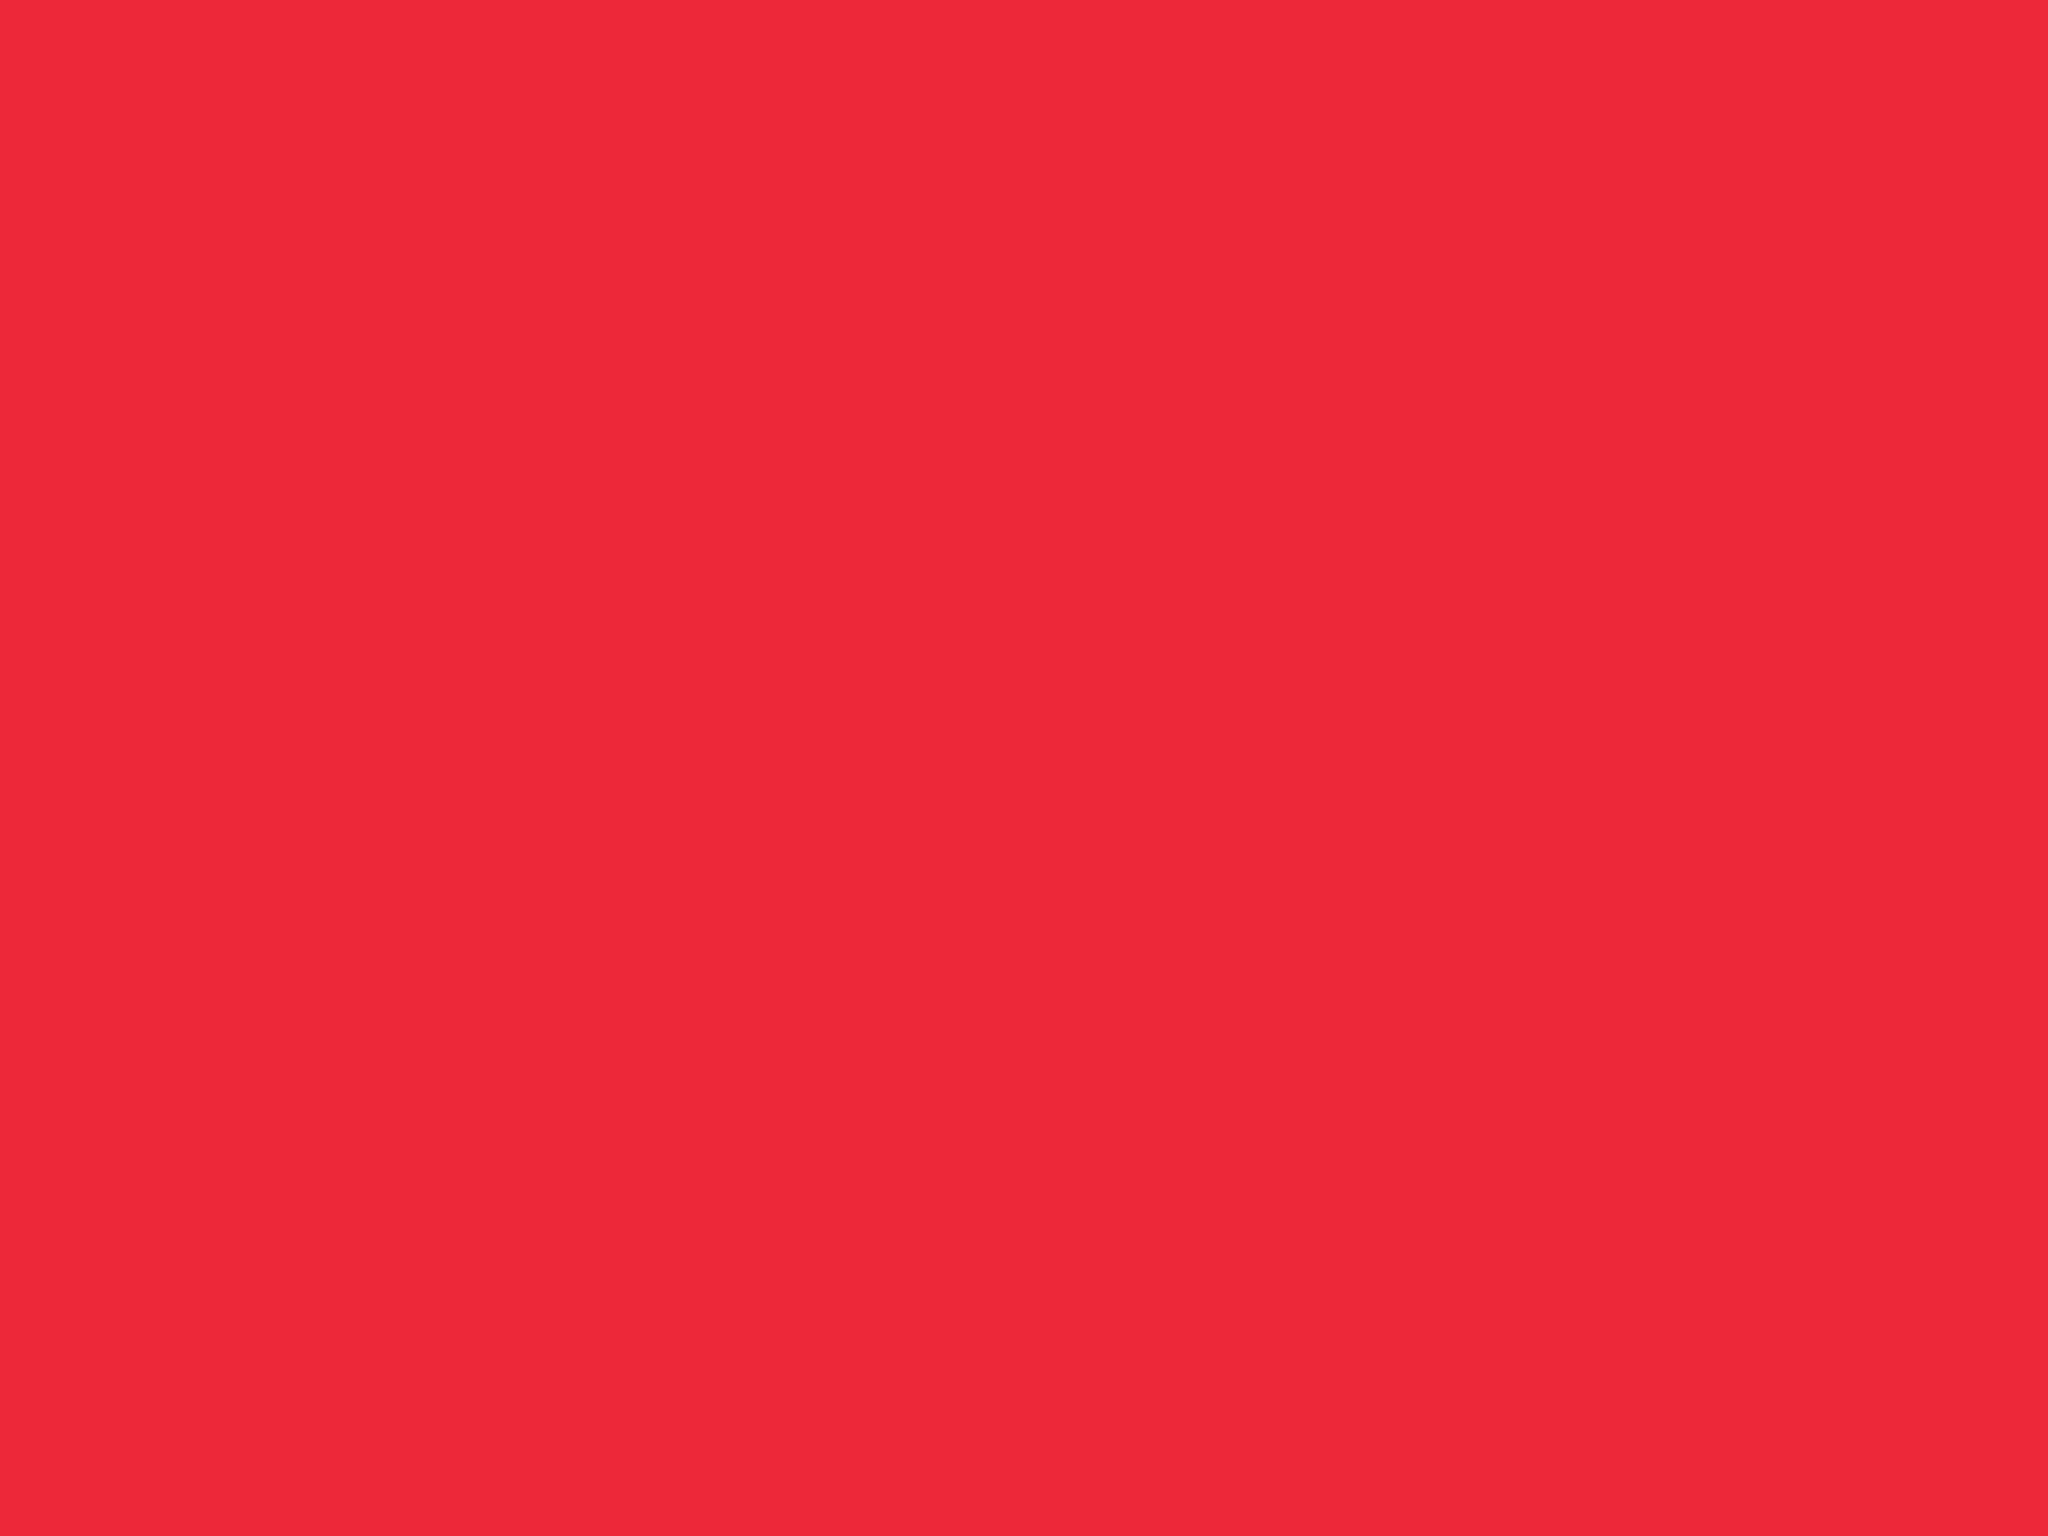 2048x1536 Imperial Red Solid Color Background